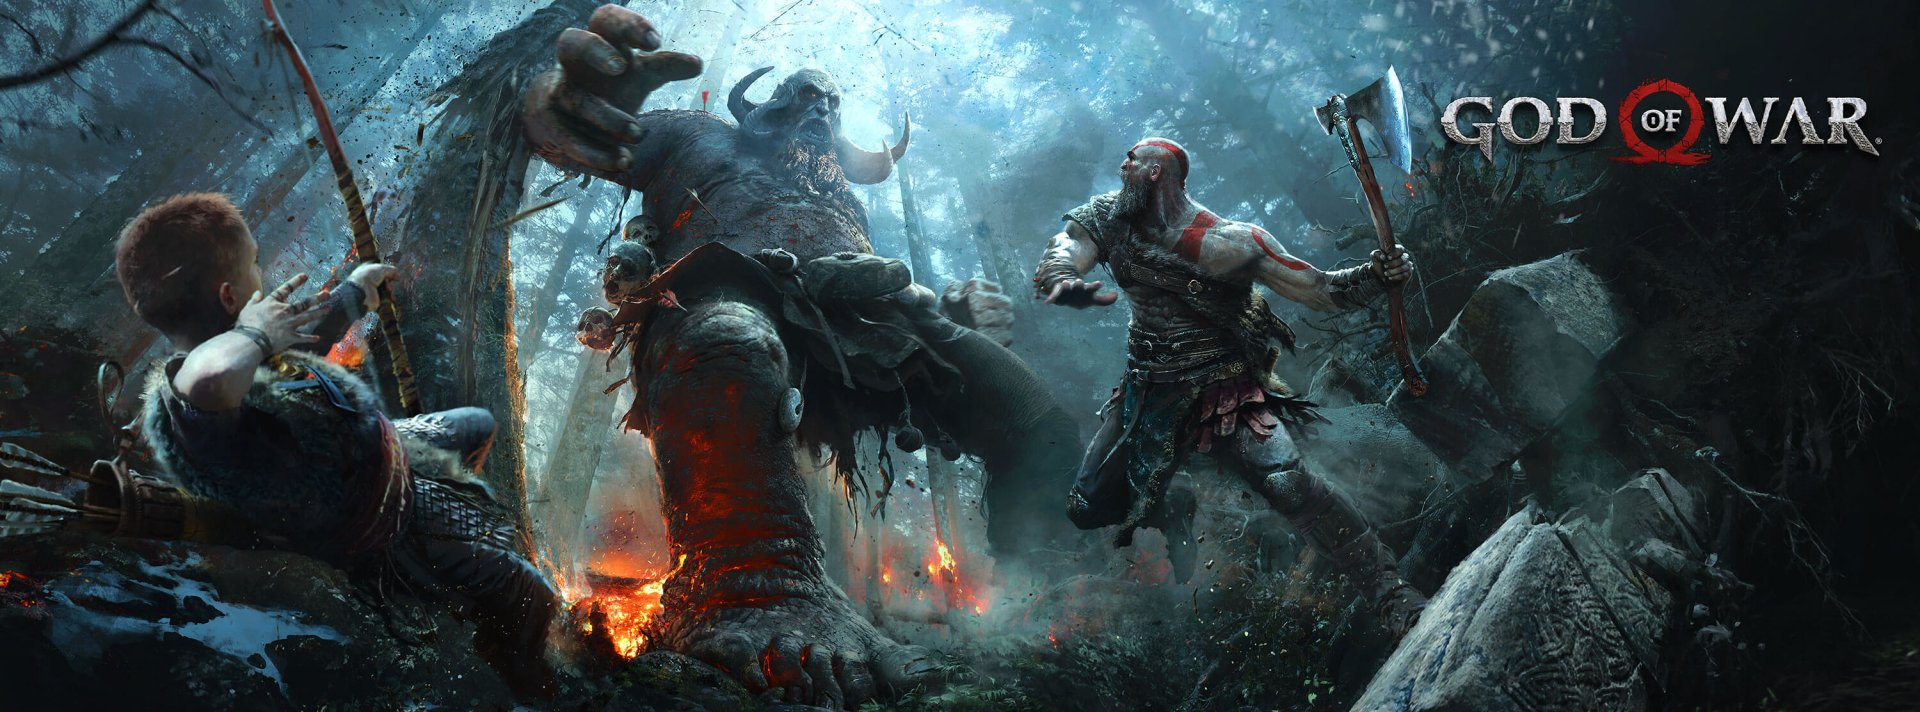 119 God Of War 2018 Hd Wallpapers Background Images